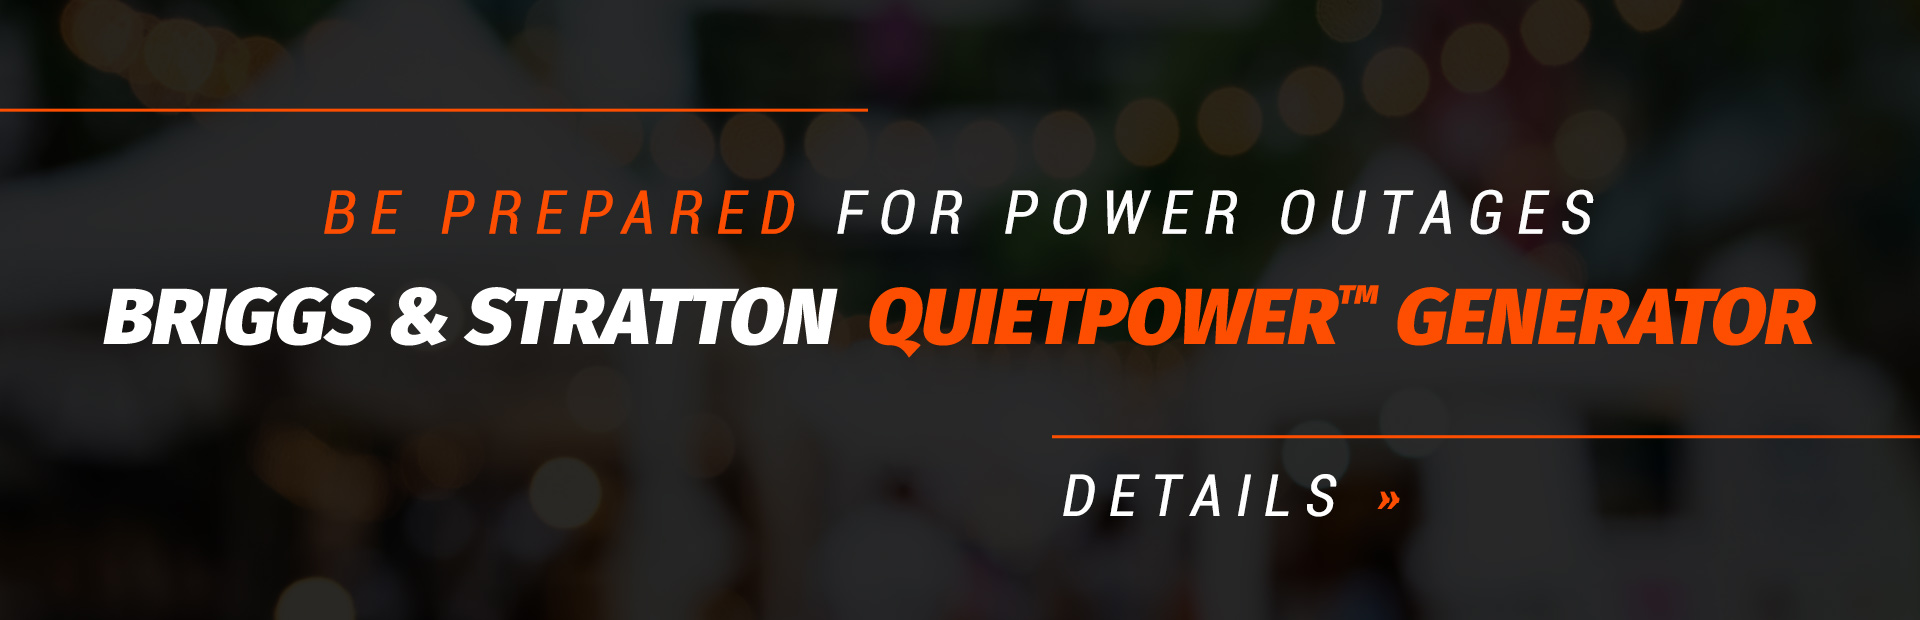 Be prepared for power outages with a Briggs & Stratton QuietPower™ generator!